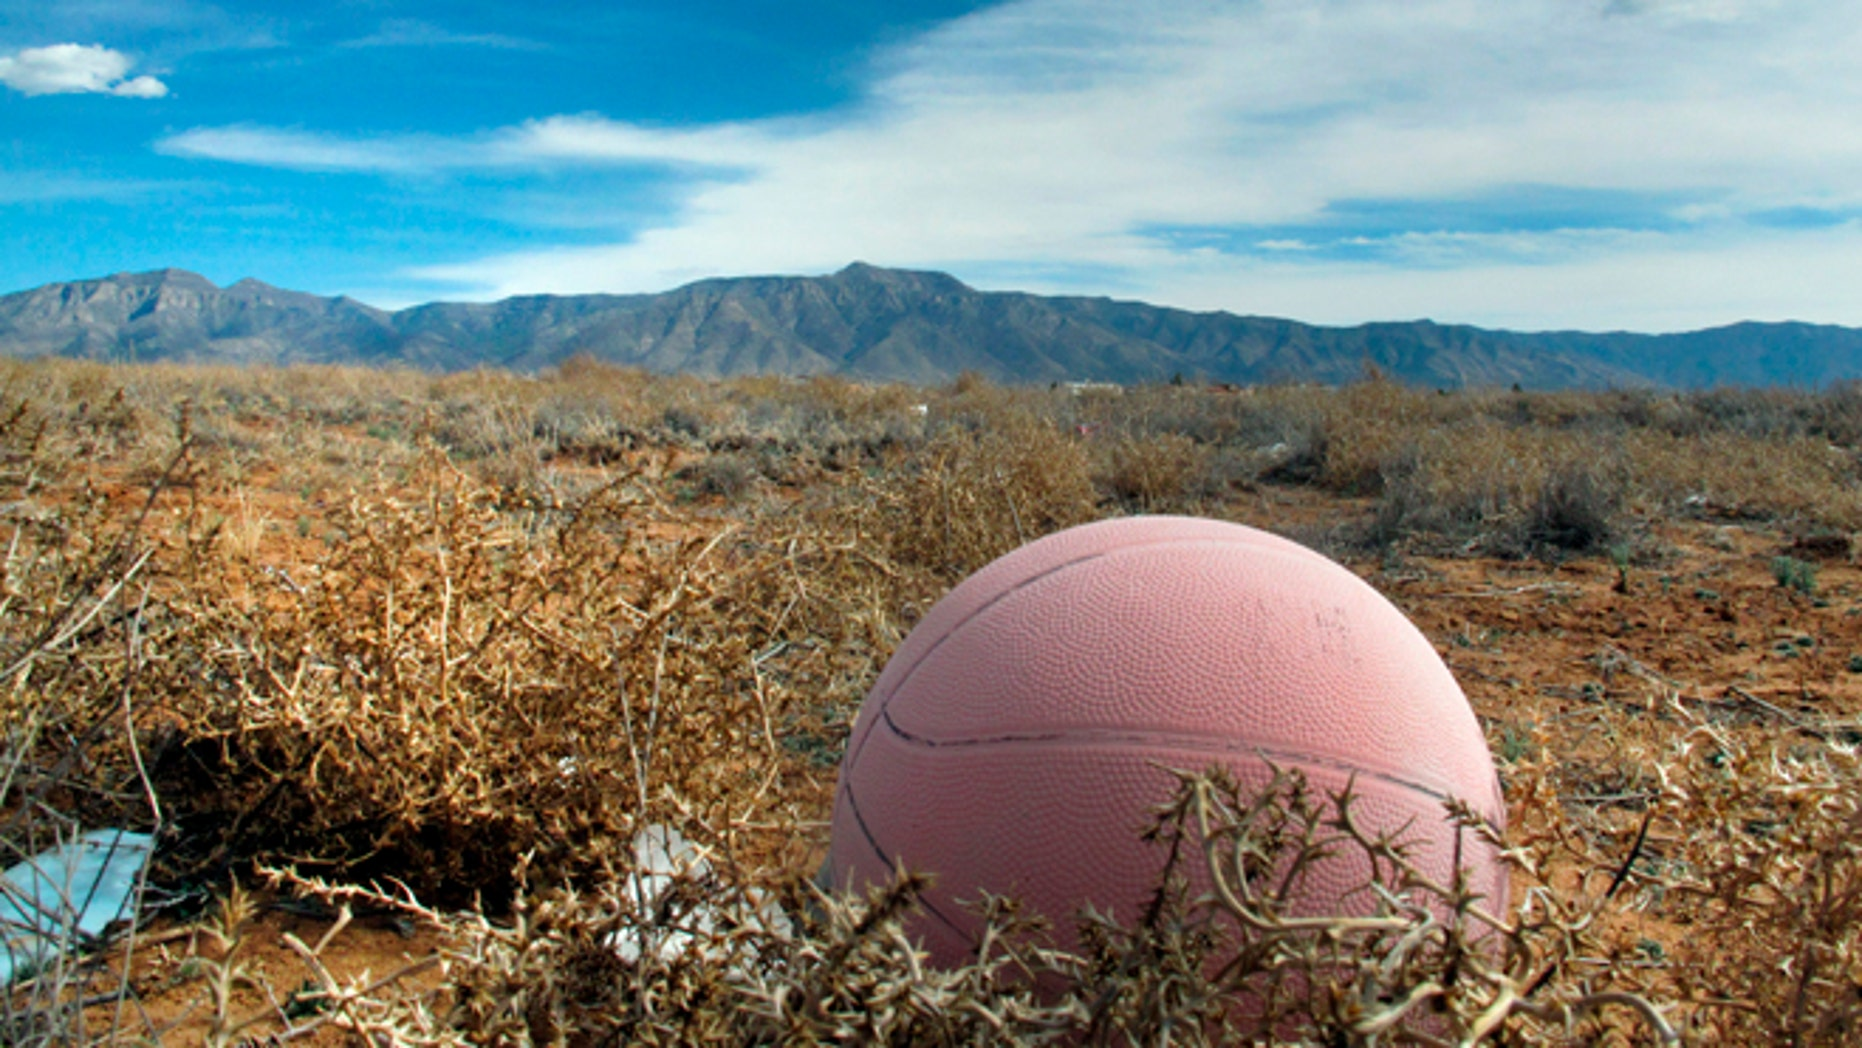 An old basketball in an abandon lot south of Albuquerque is shown where authorities say the body of a 12-year-old boy was discovered, Wednesday, Feb. 19, 2014, in Meadow Lake, N.M. Valencia County Sheriff Louis Burkhard said Alex Madrid of Albuquerque was found in the field Tuesday after his parents reported him missing. (AP Photo/Russell Contreras)